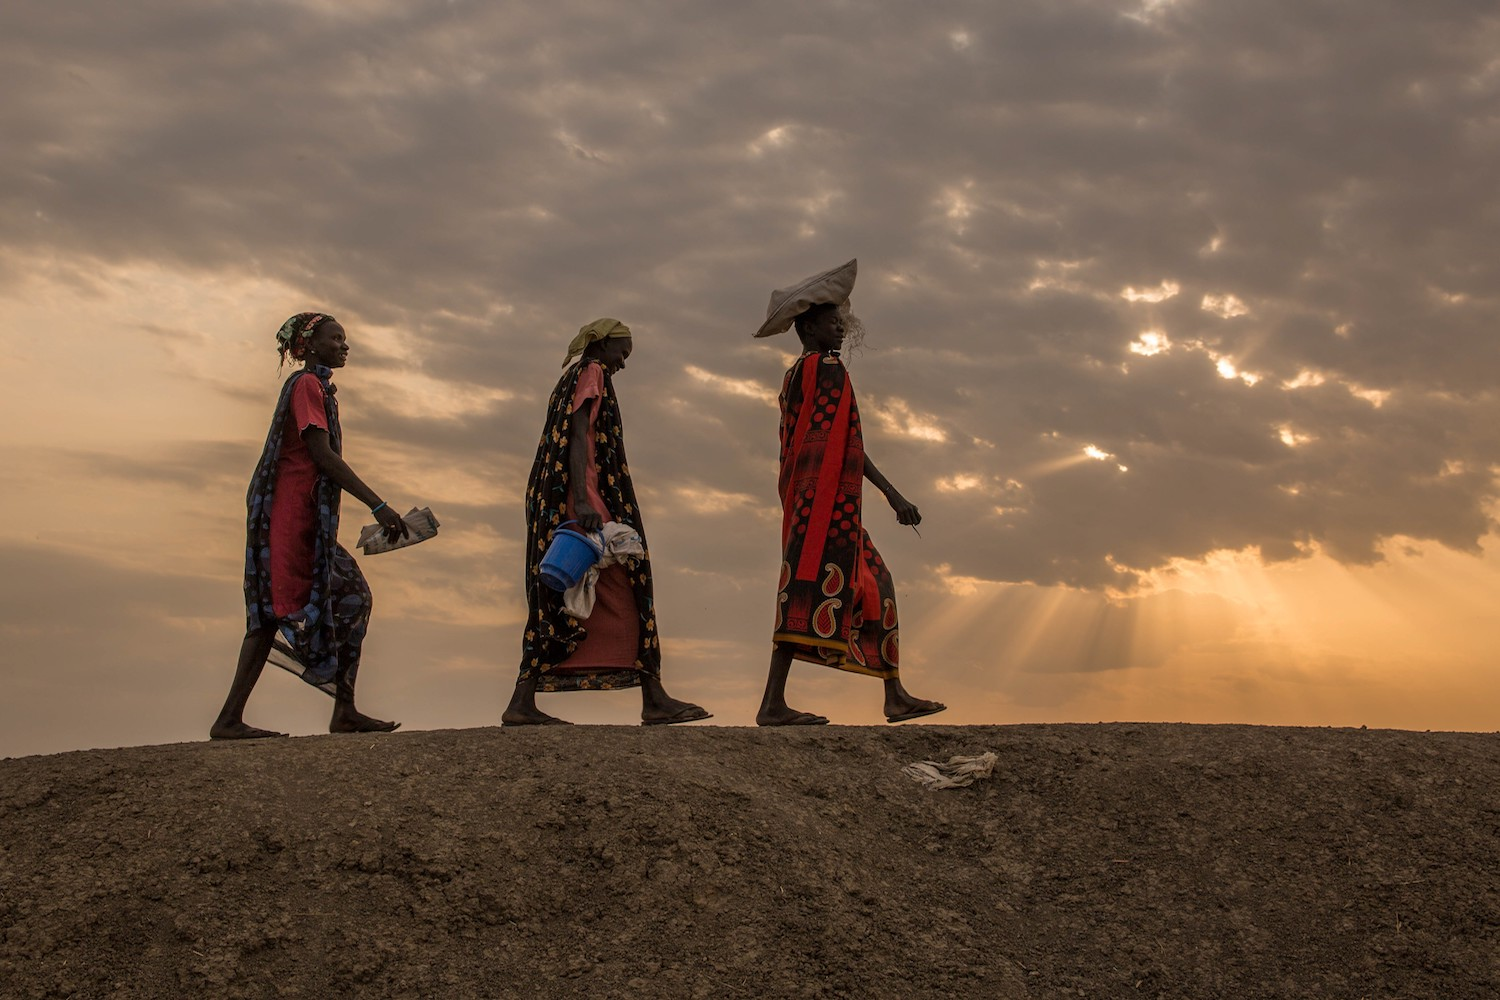 TOPSHOT - Internally displaced women walk to a food distribution in the early morning at the Protection of Civilian site (PoC) in Bentiu, South Sudan, on February 13, 2018. Bentiu's Protection of Civilian site was established in January 2014, when 7,000 civilians entered the UNMISS base to seek protection, shortly after the start of the South Sudanese civil war. The camp hosts over 20,000 households and at least 114,250 individuals by IOM. the numbers keep growing every day, as fighting brings more people seeking safety.  / AFP PHOTO / Stefanie GLINSKI        (Photo credit should read STEFANIE GLINSKI/AFP/Getty Images)